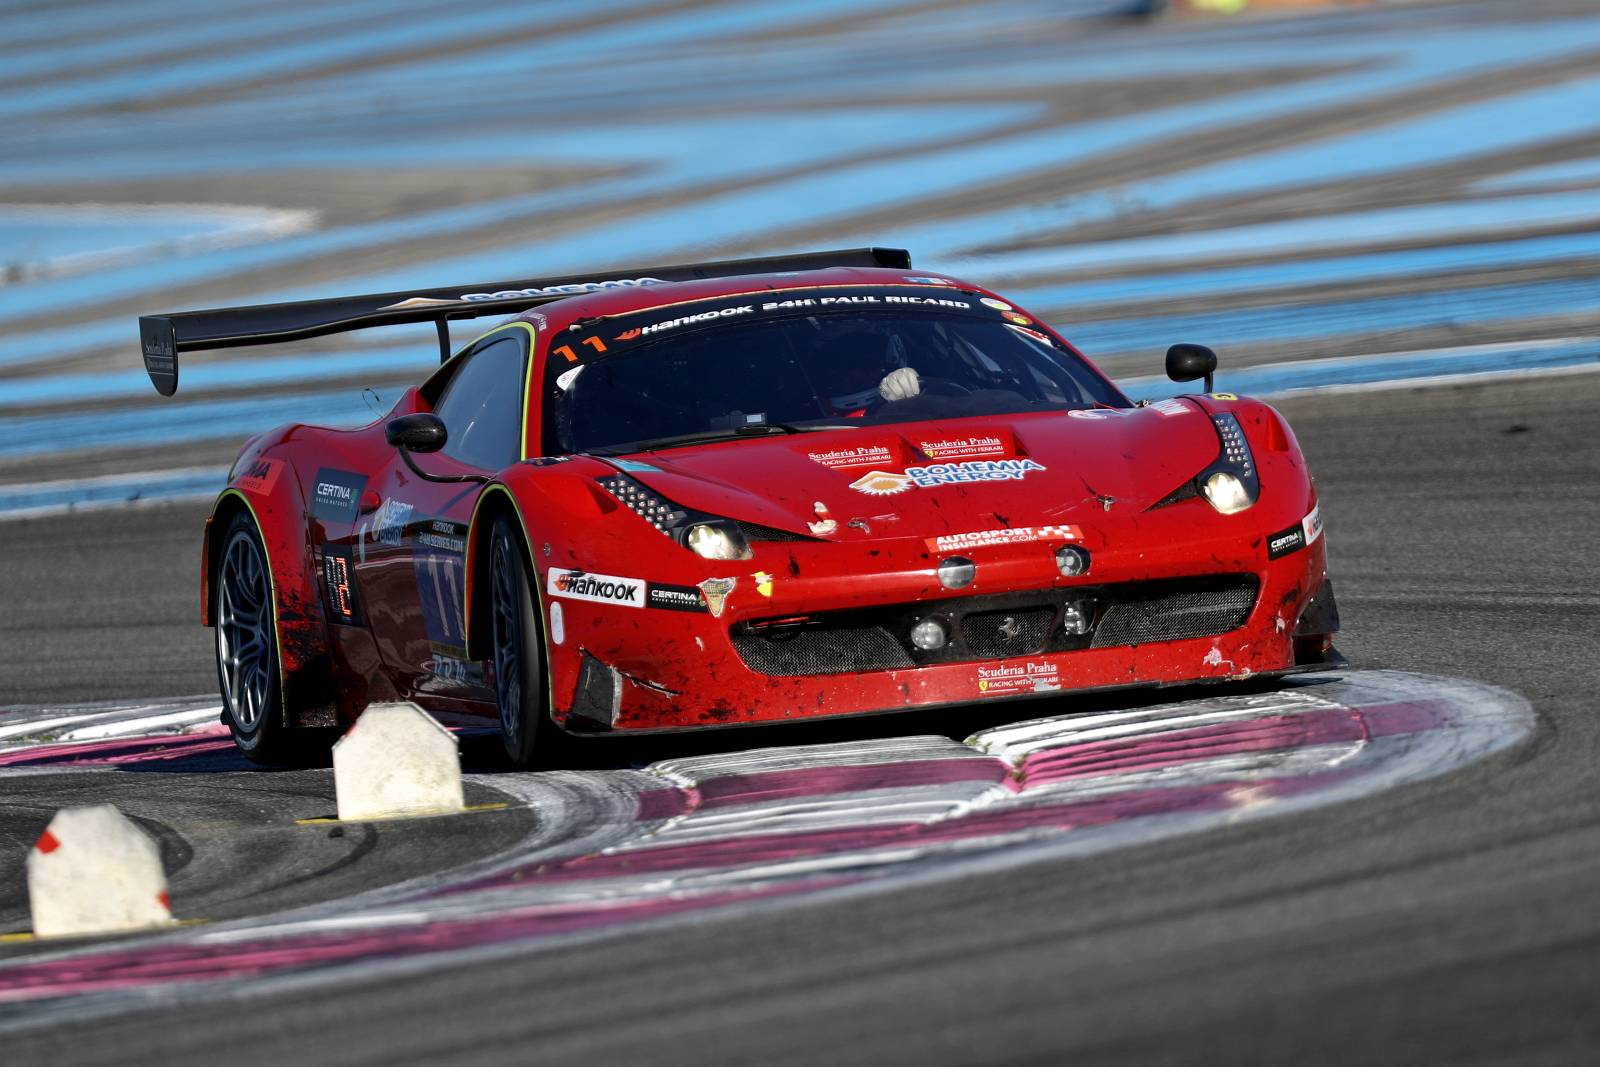 peter-kox-24h-paul-ricard-2016-035